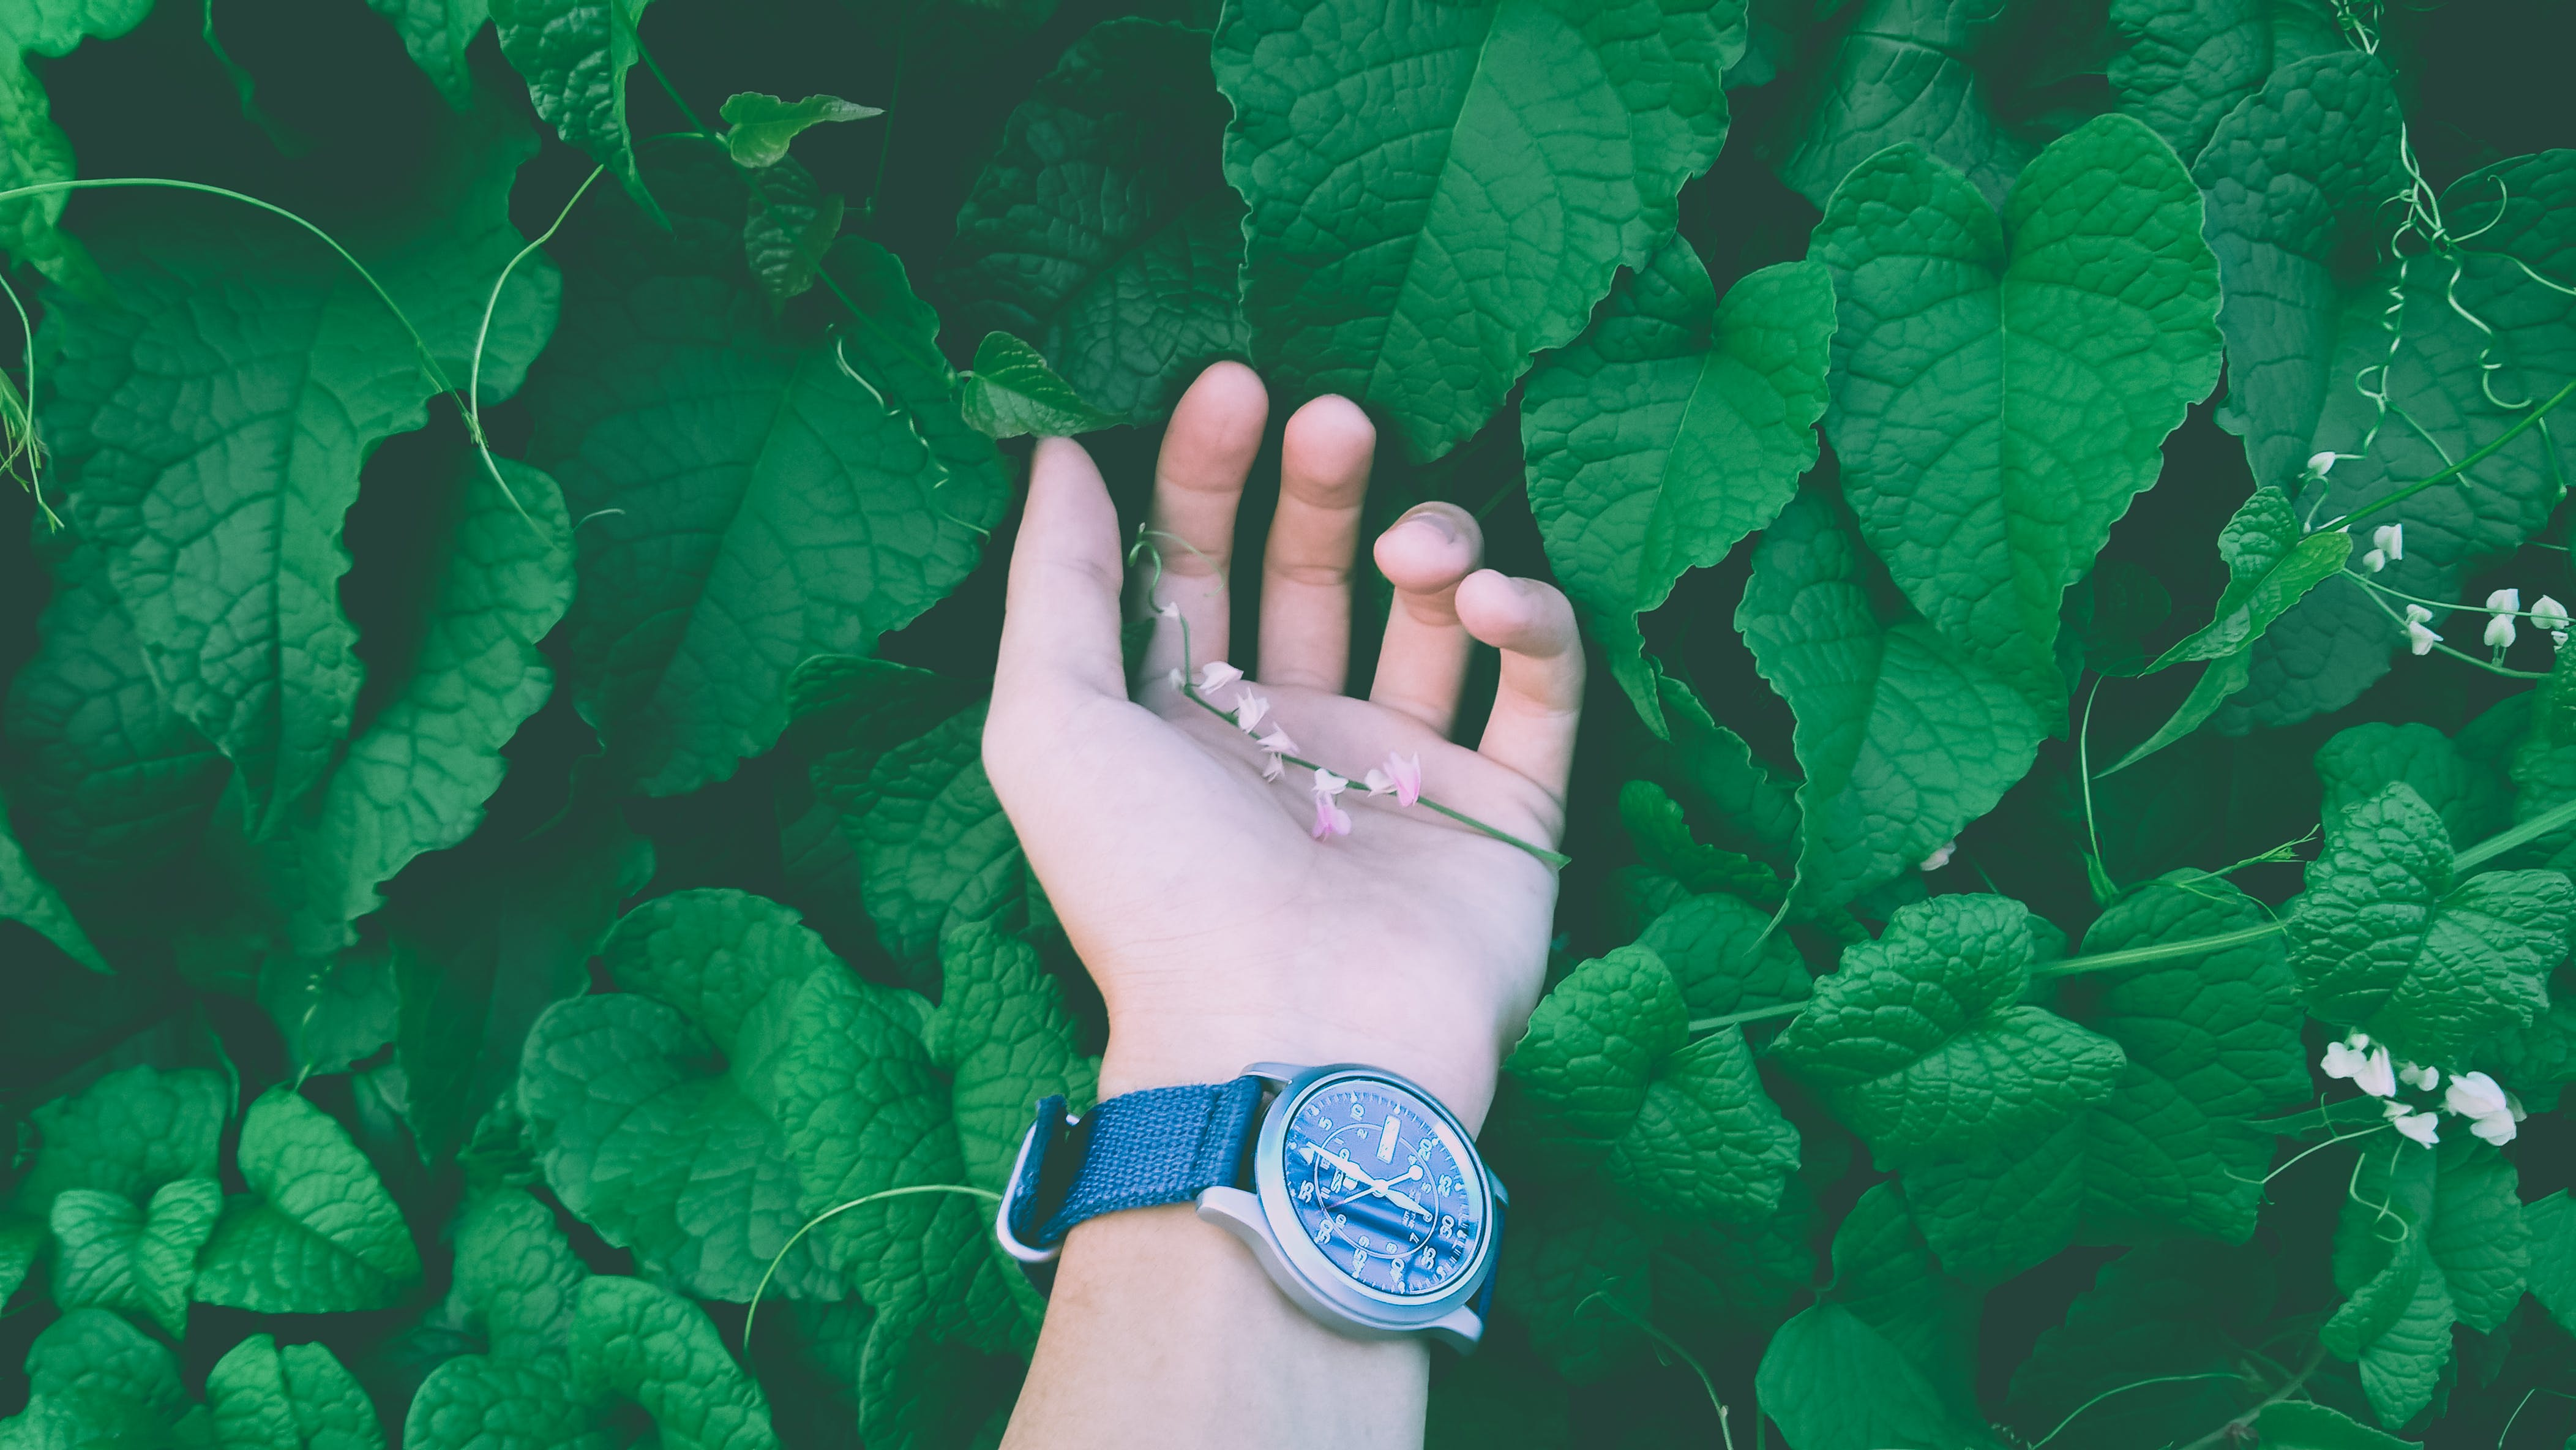 Close Up Photo of a Person Wearing Wristwatch